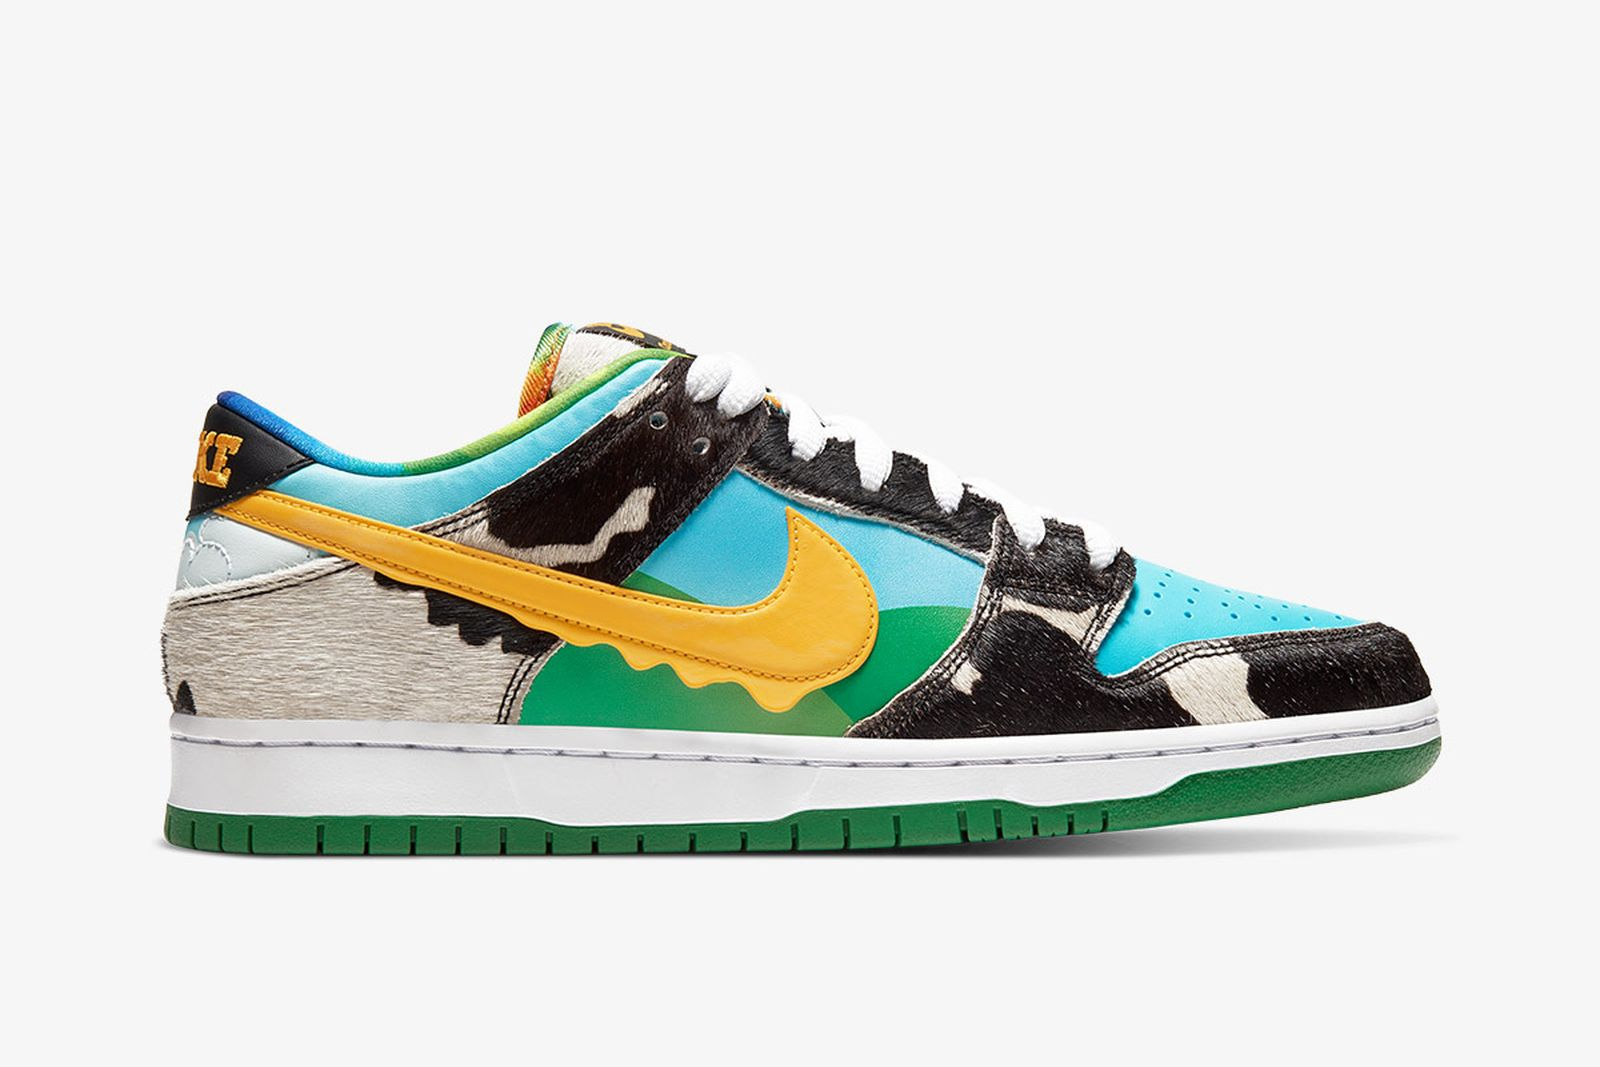 nike-sb-dunk-chunky-dunky-release-date-price-product-07